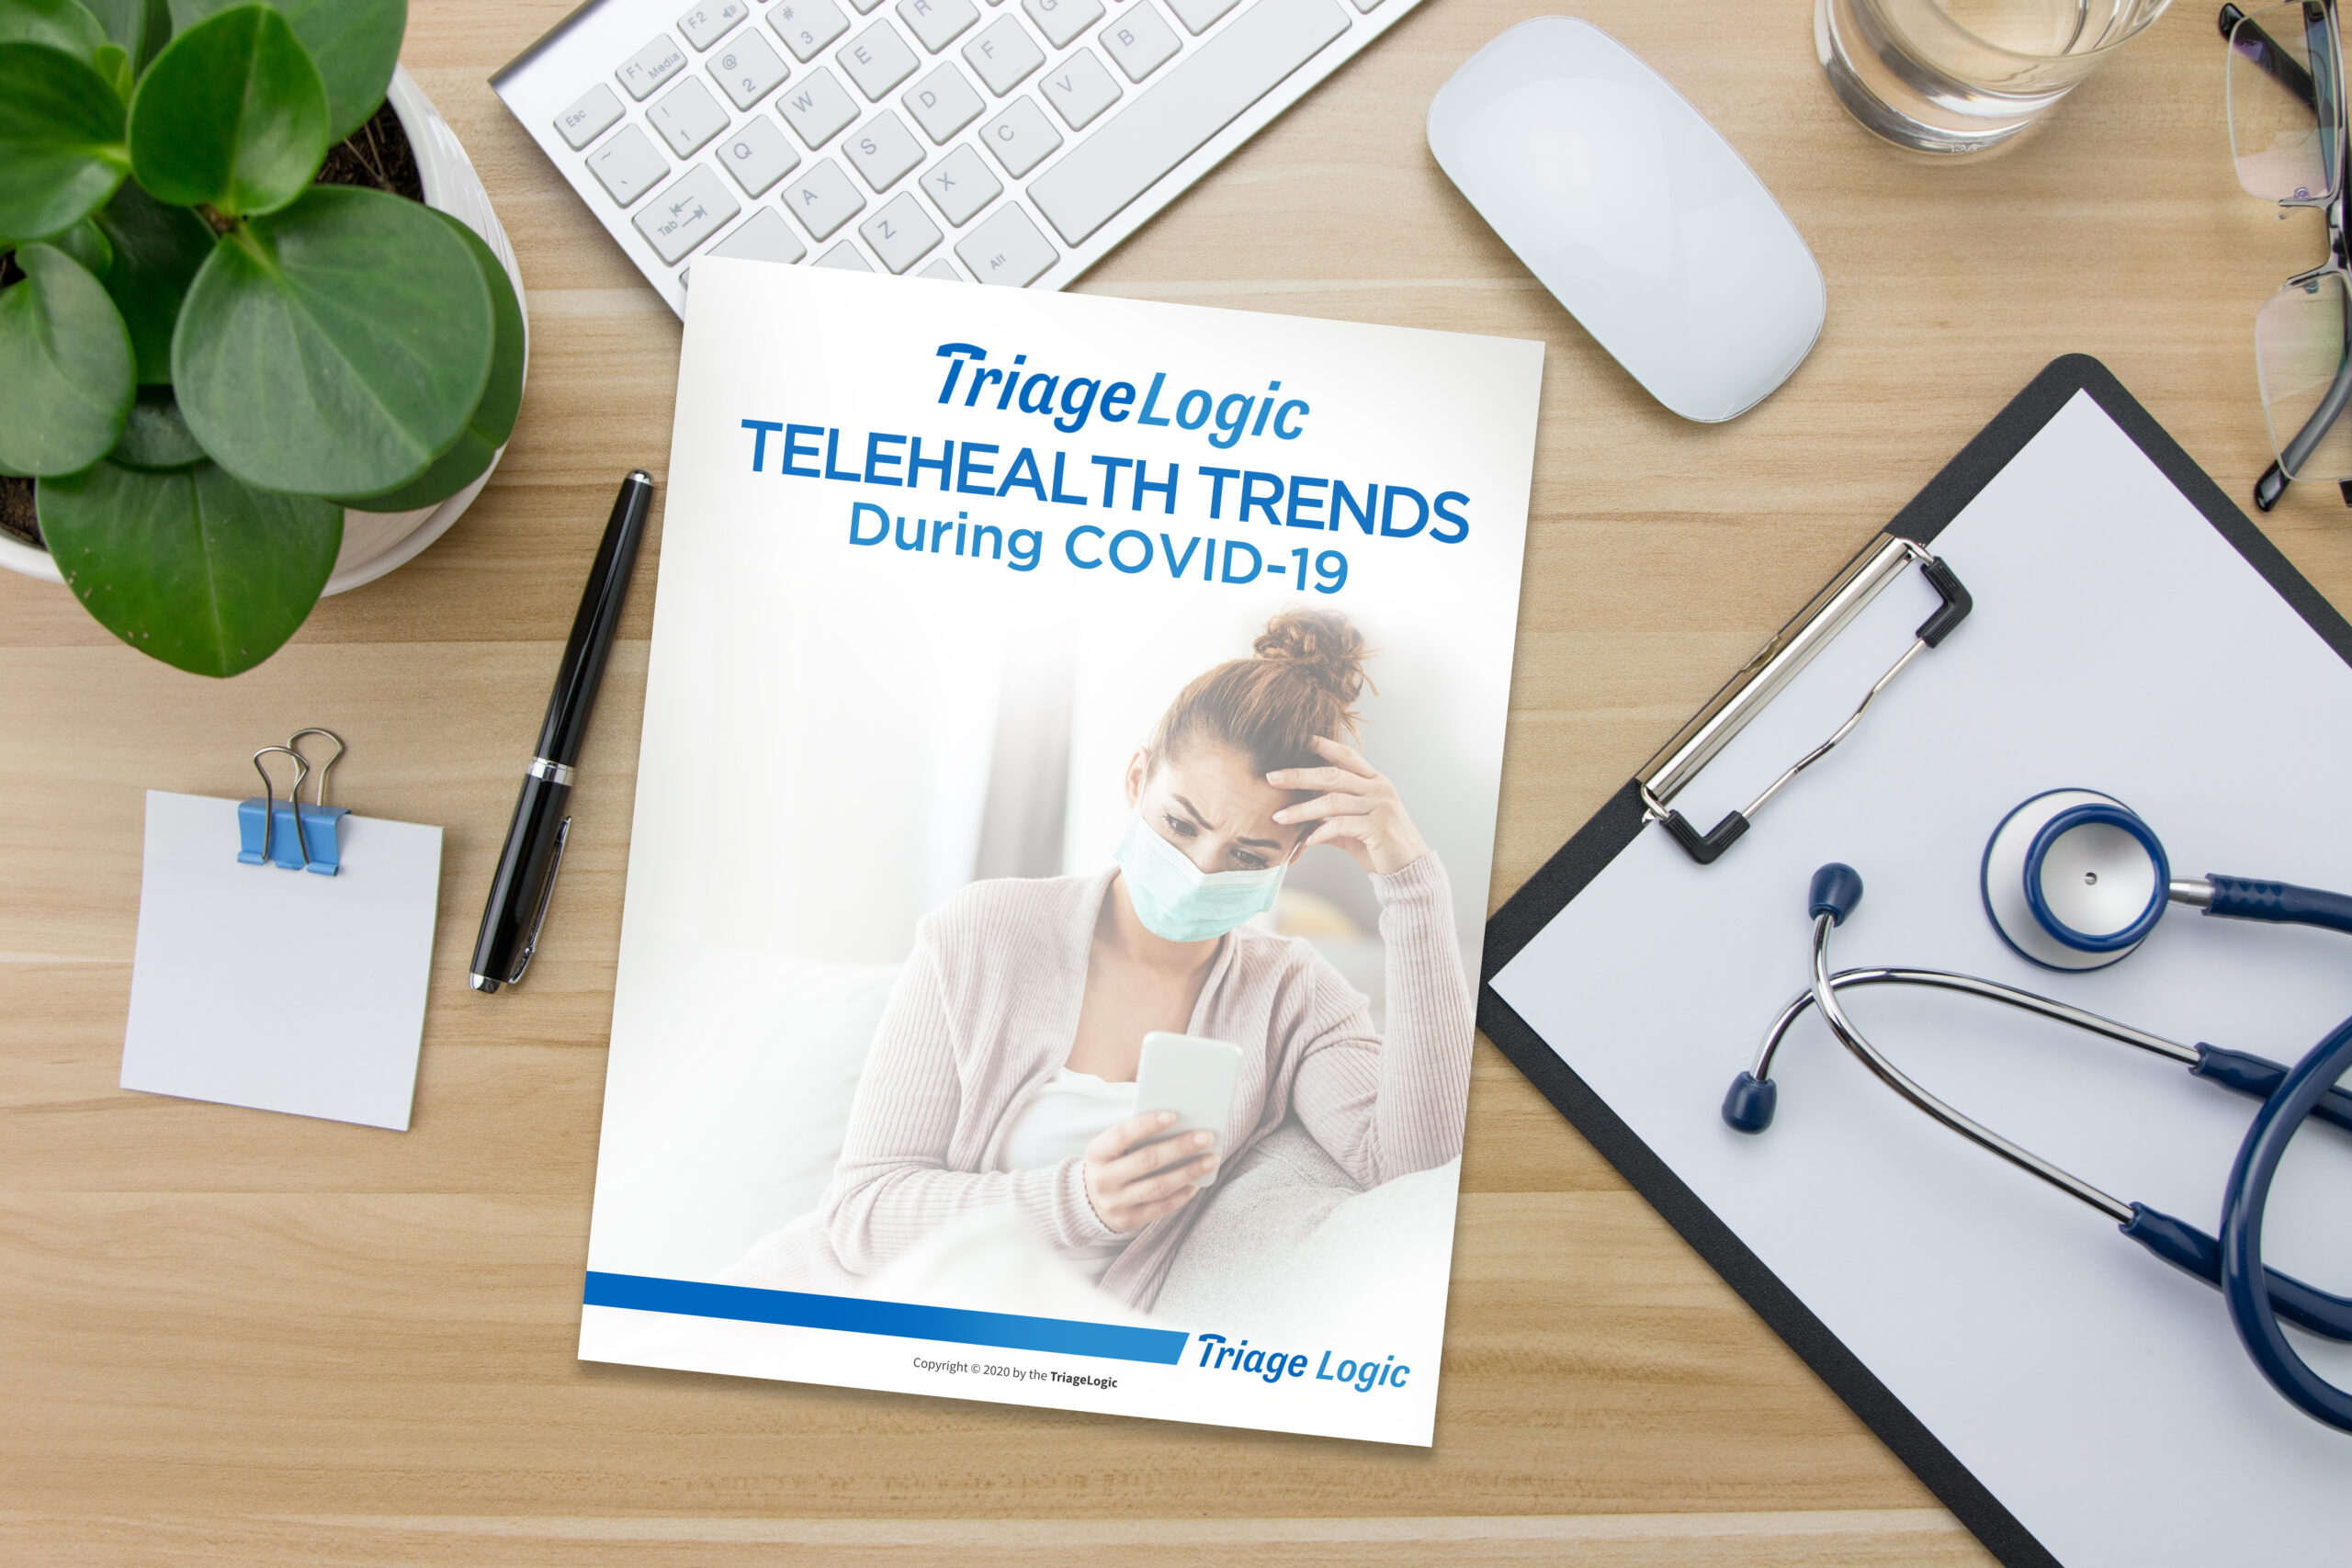 Press Release: TriageLogic Announces Ebook on Telehealth Trends During the COVID-19 Pandemic